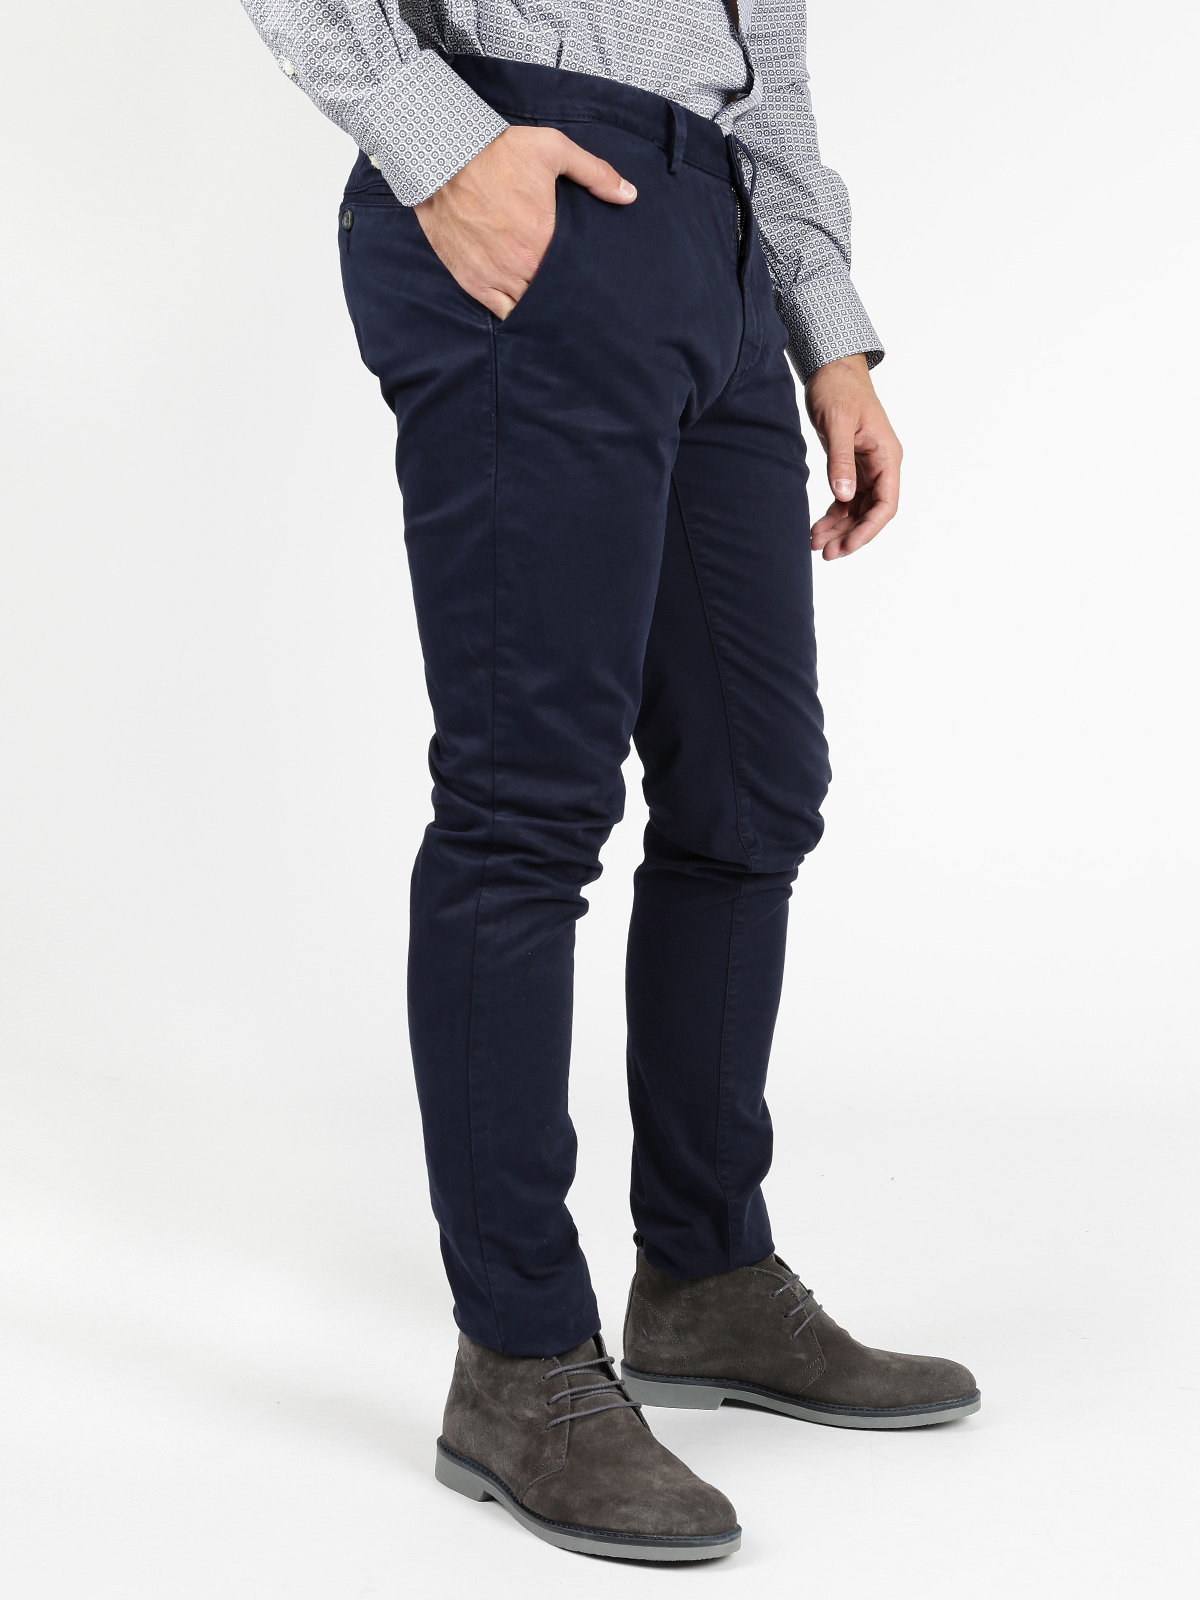 Pants Slim Fit Cotton-Blue